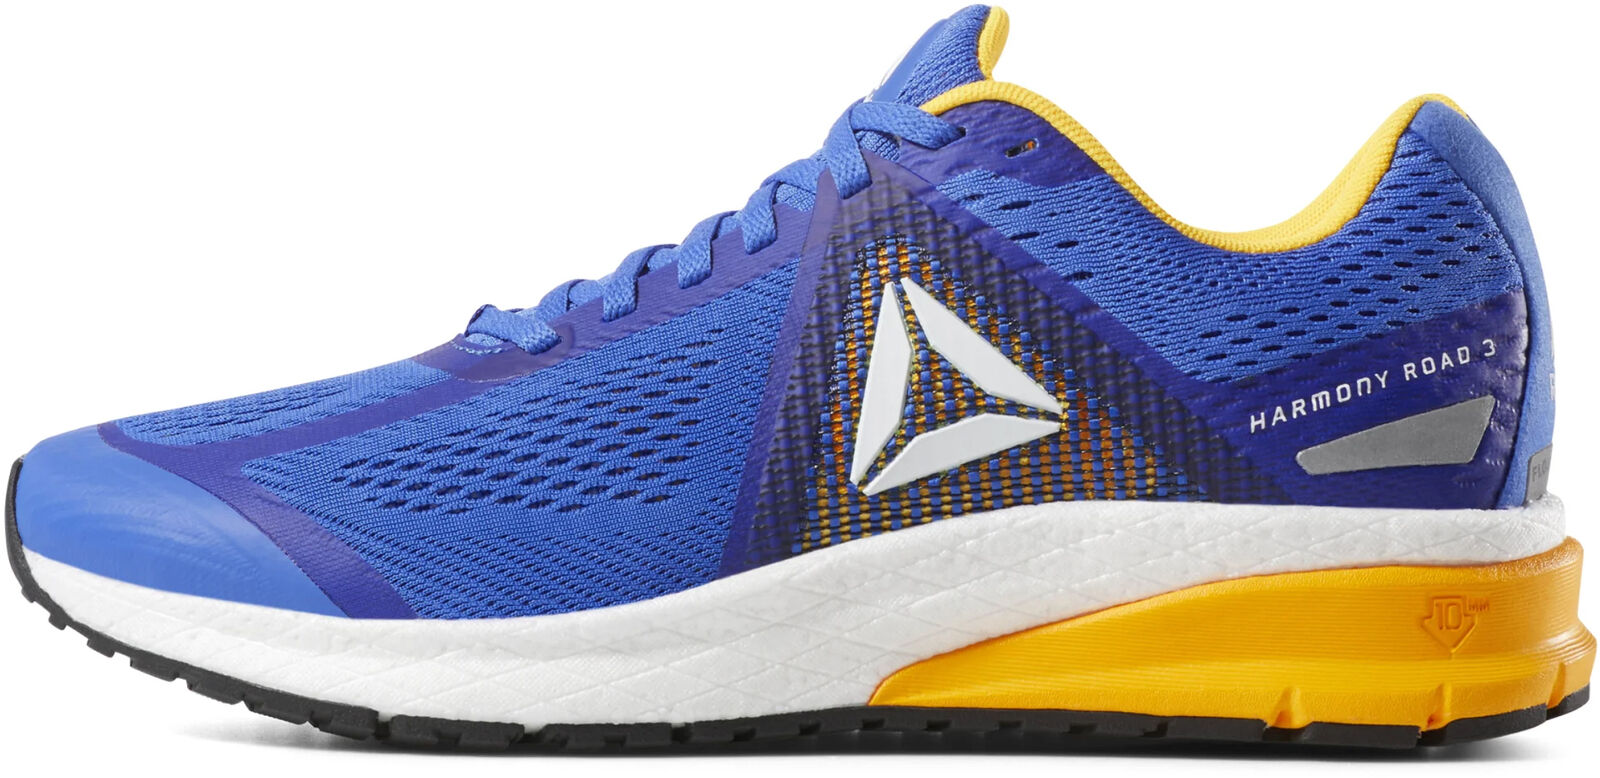 Reebok Harmony Road 3 Mens Running shoes - blueee